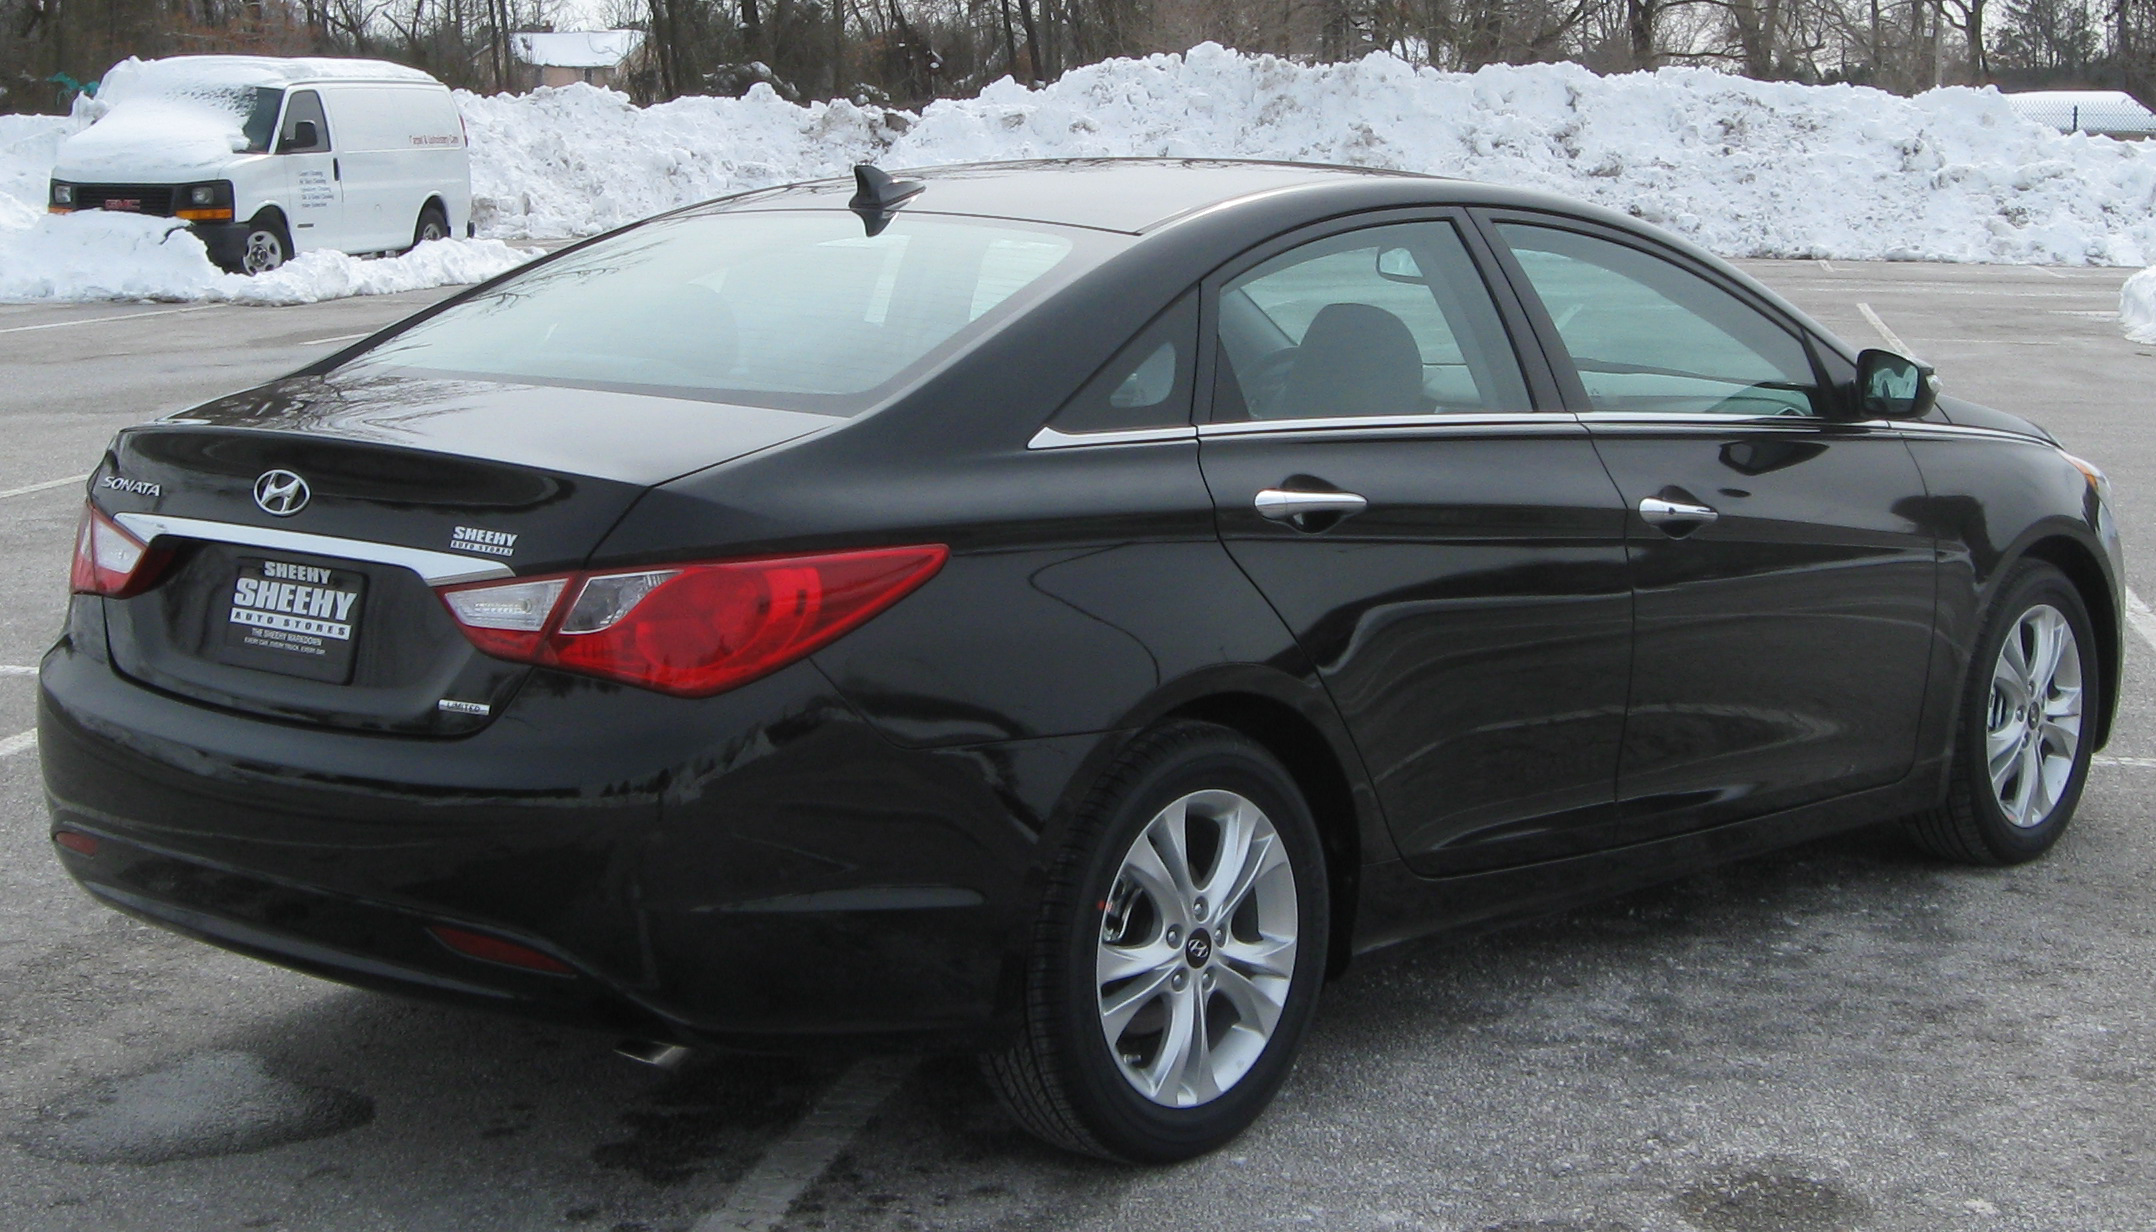 2010 hyundai sonata vii pictures information and specs. Black Bedroom Furniture Sets. Home Design Ideas